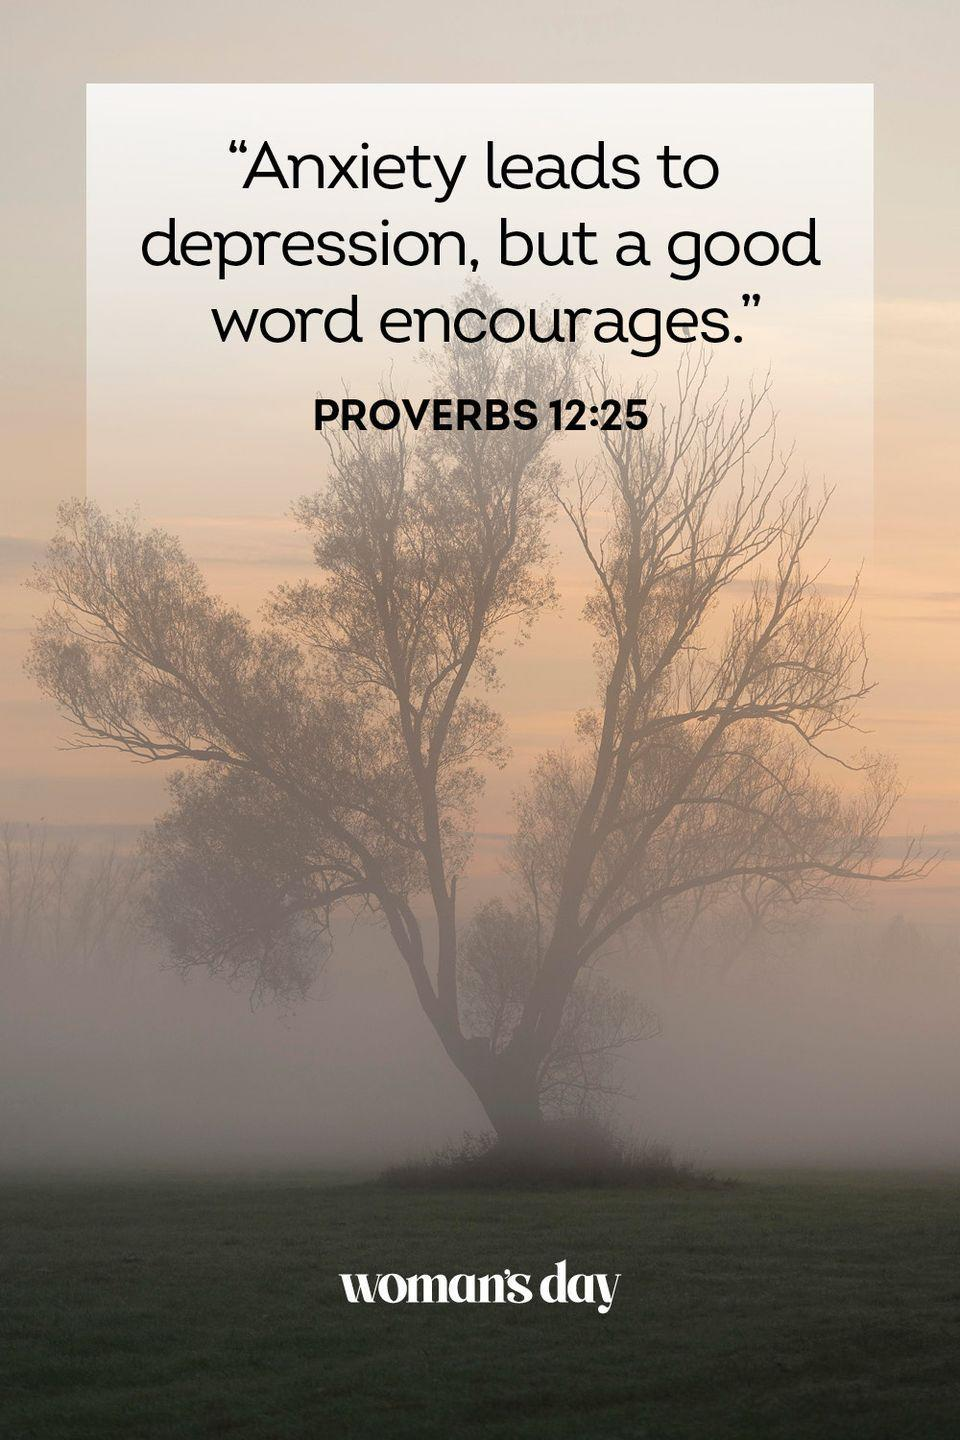 """<p>""""Anxiety leads to depression, but a good word encourages."""" </p><p><strong>The Good News:</strong> Often, you worry about what lies ahead and whether you can achieve all you want. Faith in the Lord should take away those troubles. He knows what your path will be, and you just have to trust in Him to get you there.</p>"""